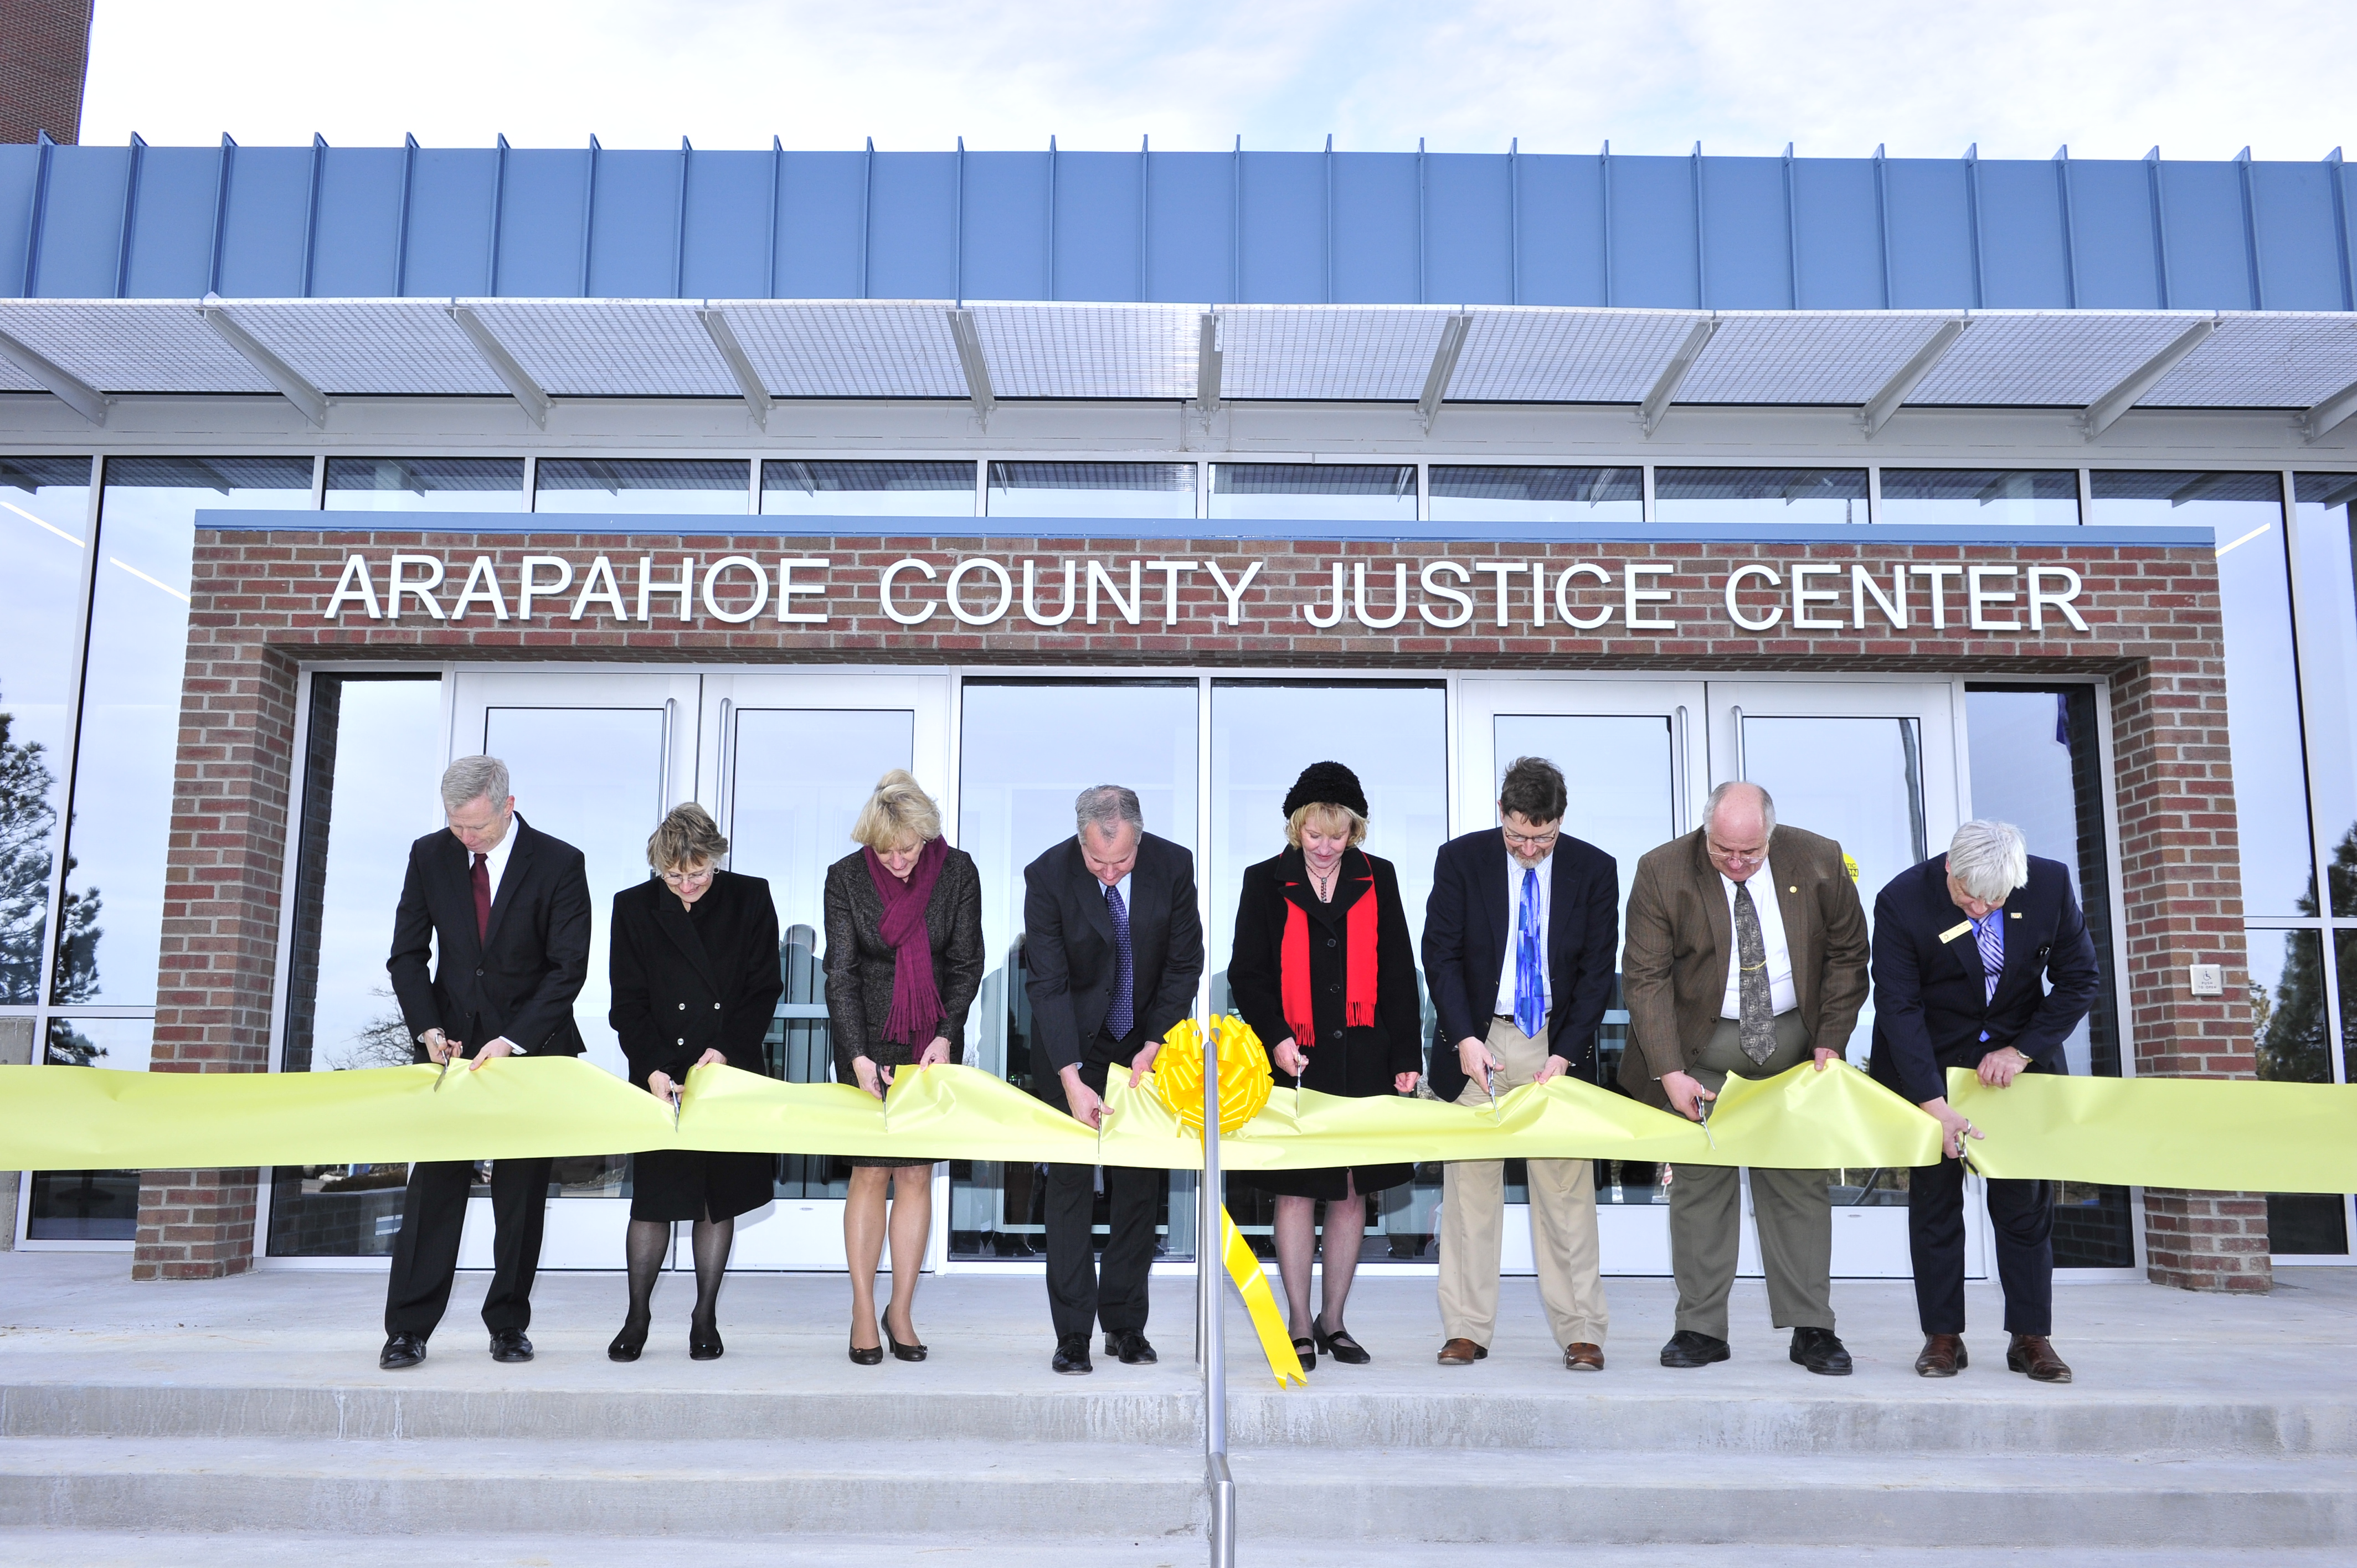 Arapahoe County Colorado Court Directory | CourtReference.com